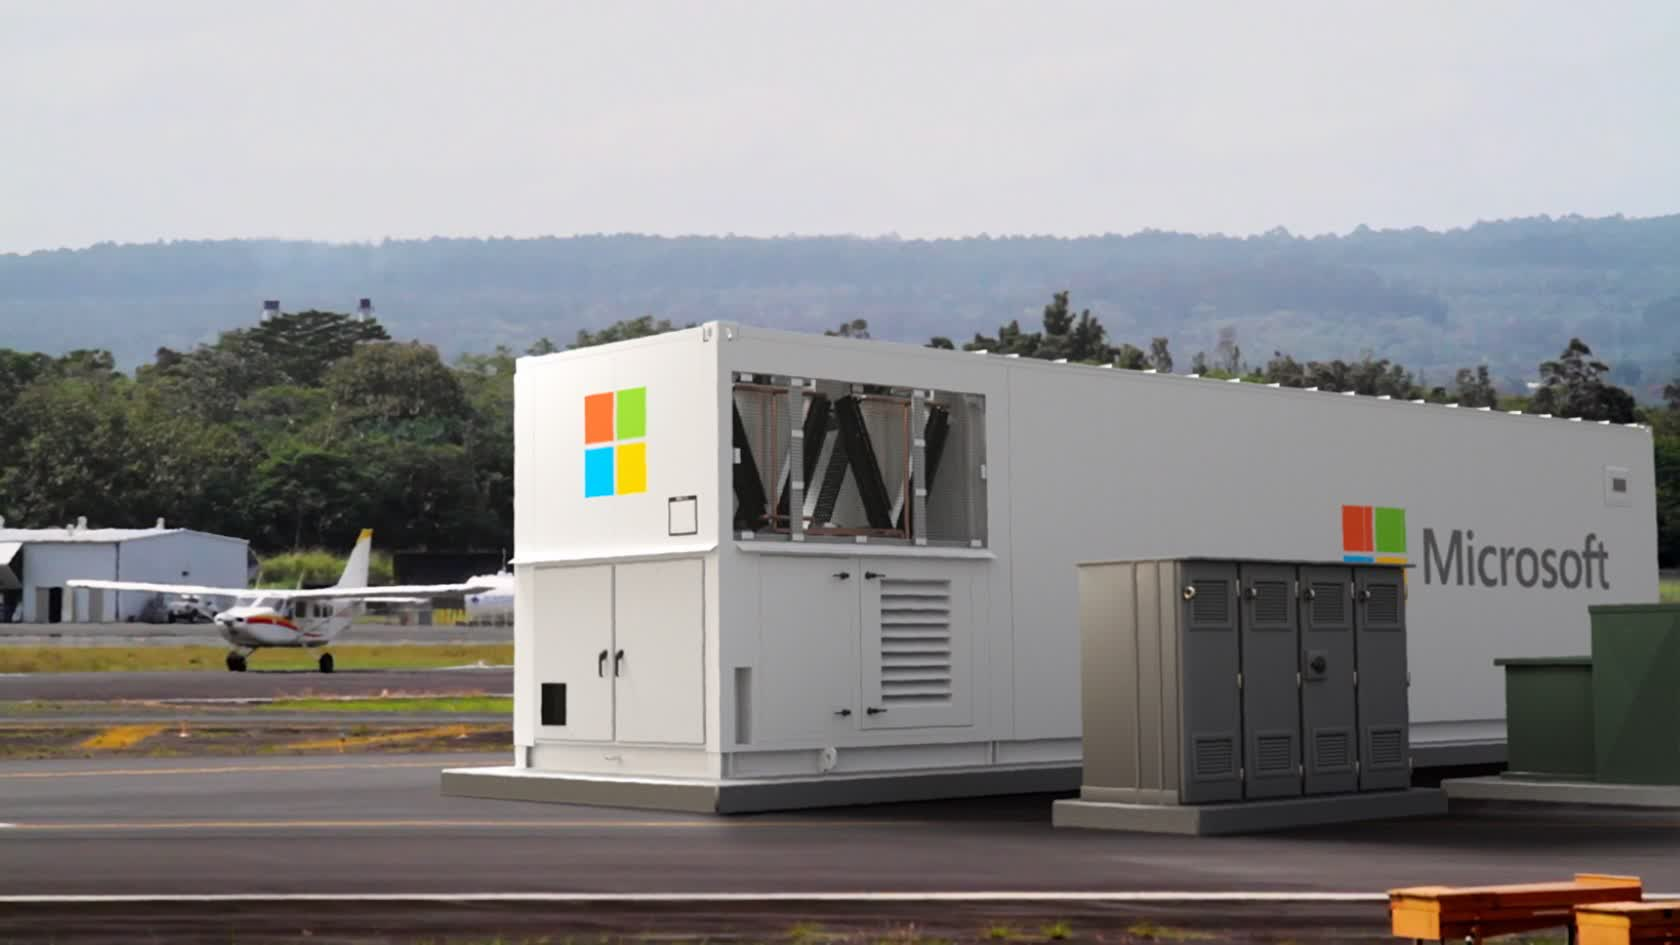 Microsoft develops a portable, box-shaped data center to bring the cloud to remote areas